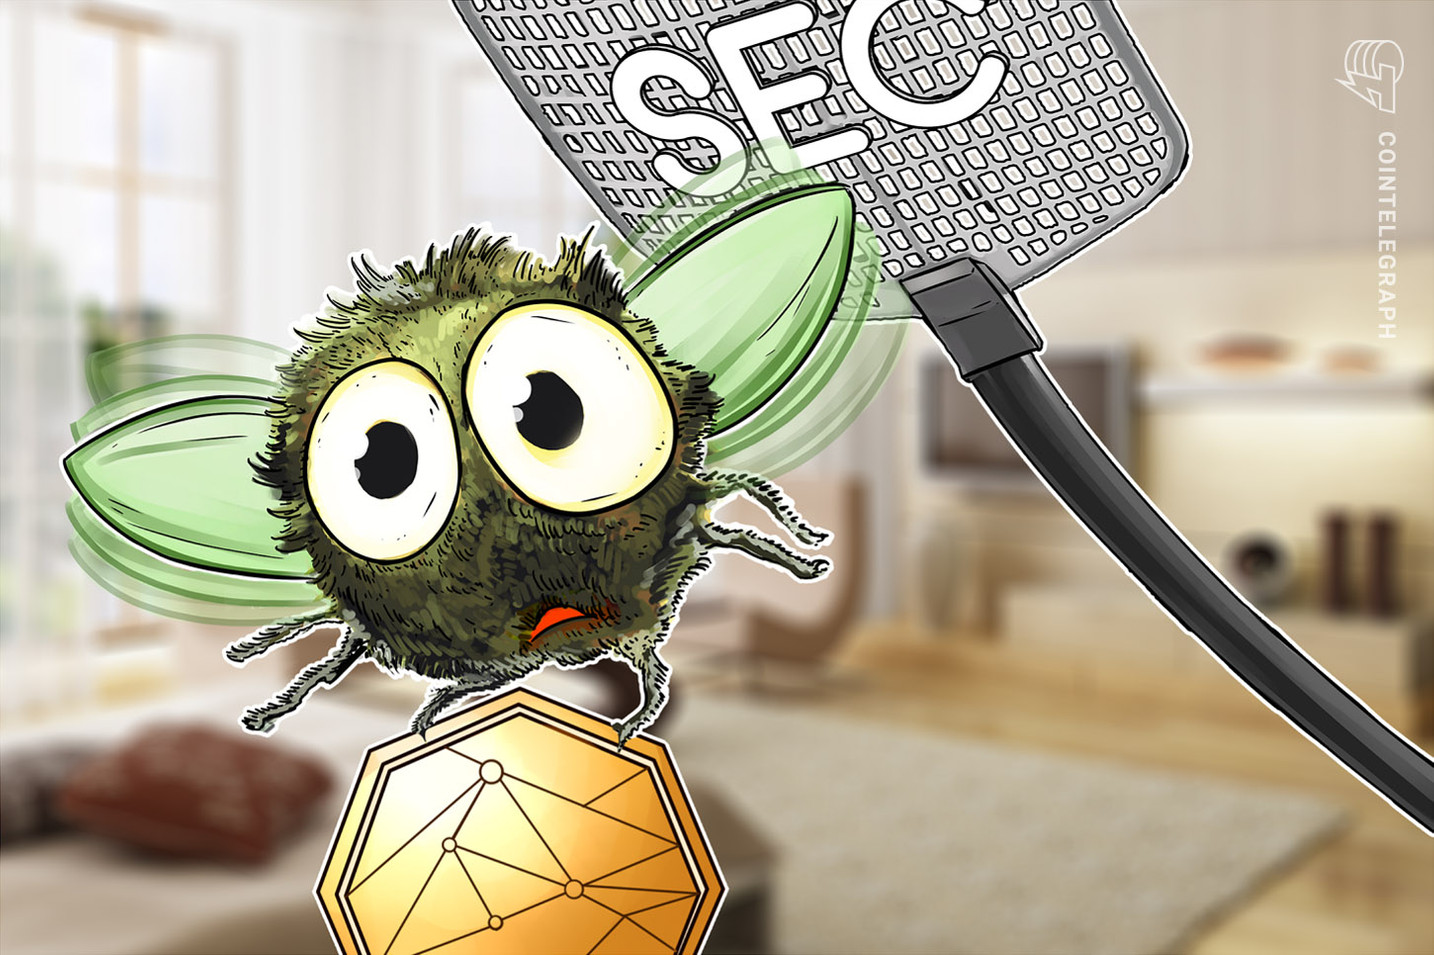 US SEC Seeks Crypto Specialist Attorney Advisor to Develop Plan for Crypto Securities